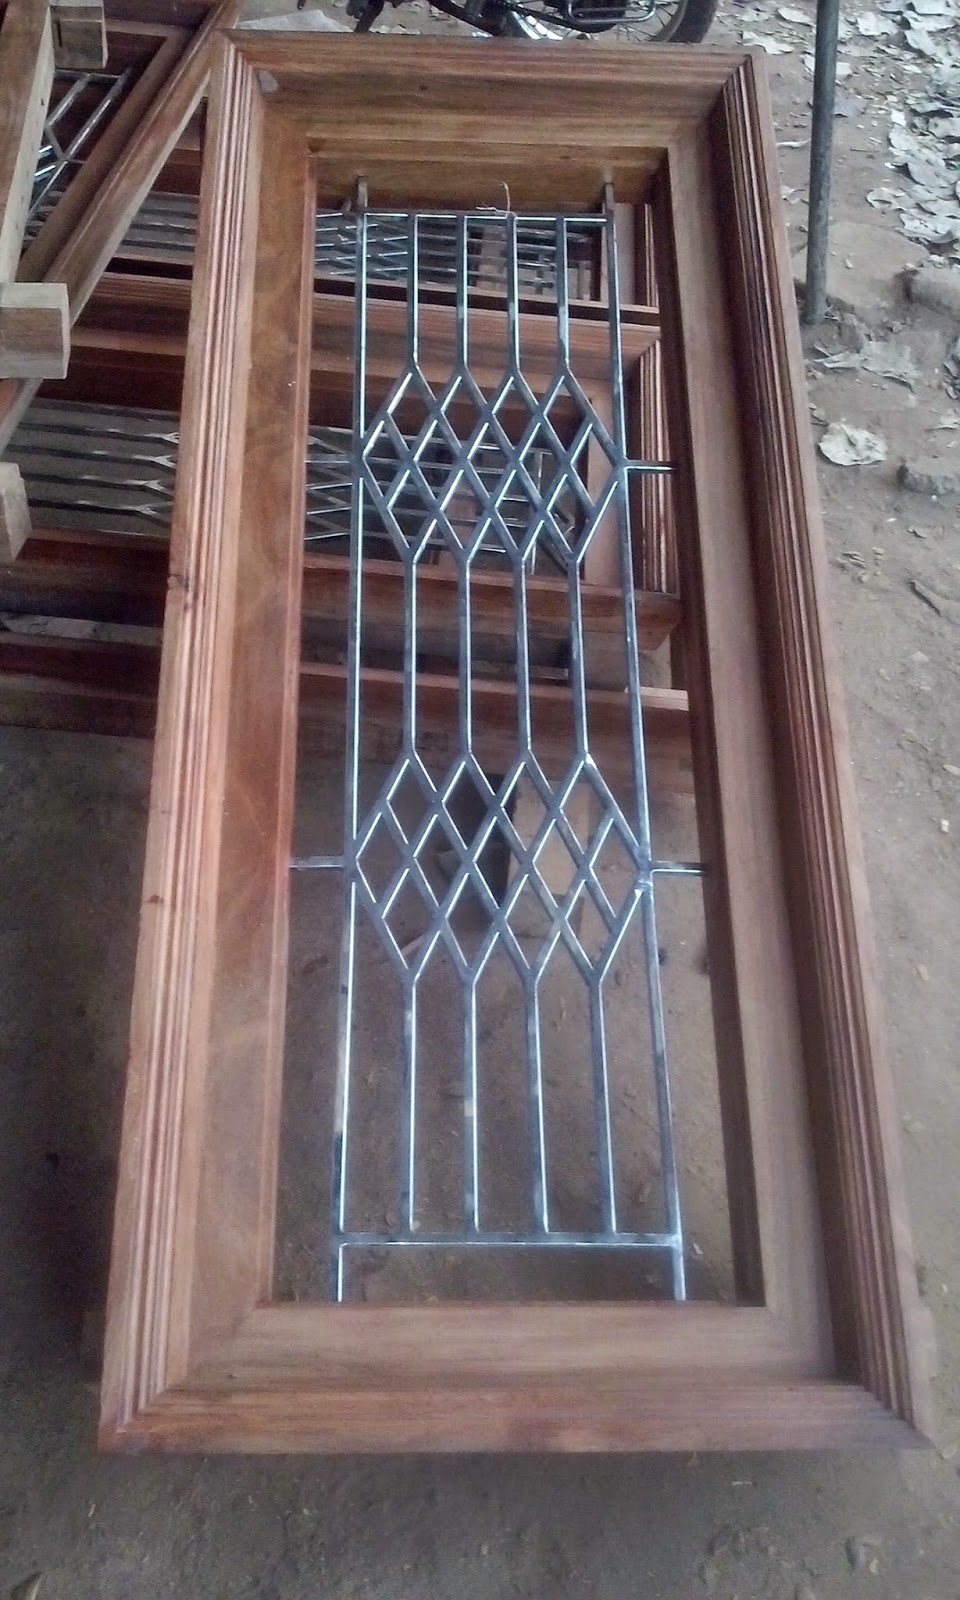 Kerala style carpenter works and designs february 2015 for Window design grill